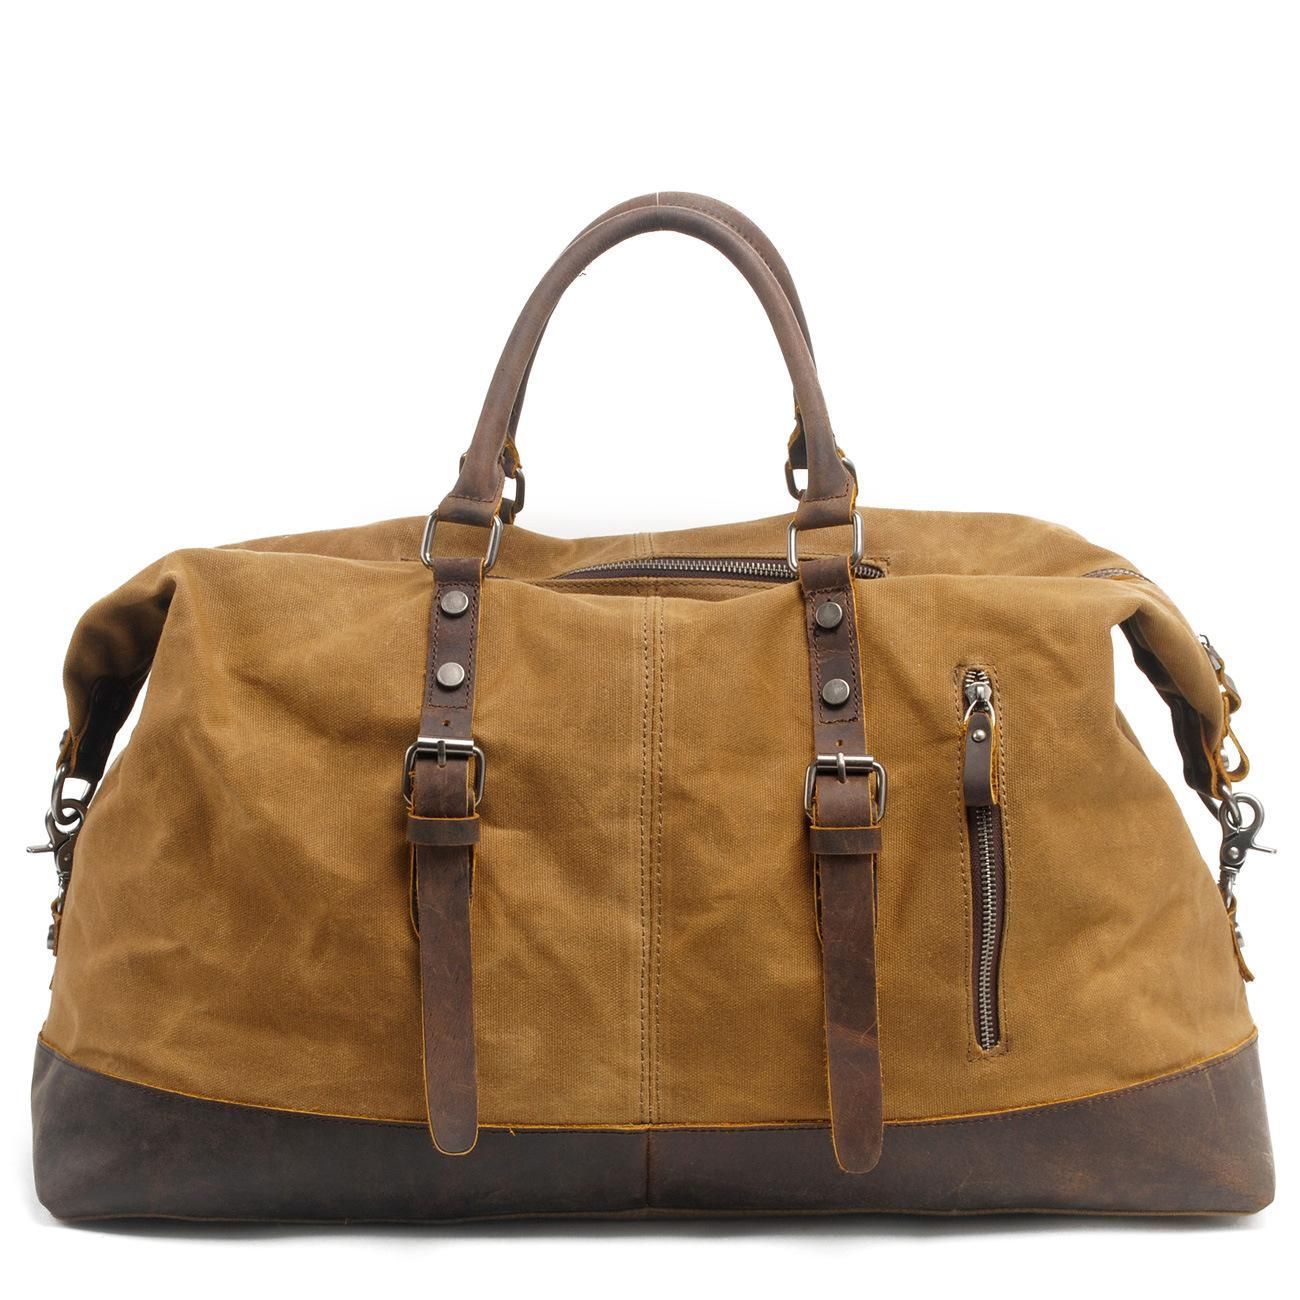 2016 Real Vintage Military Canvas Crazy Horse Leather Men Travel Carry Luggage Duffel Bags Tote Large Weekend Bag Overnight